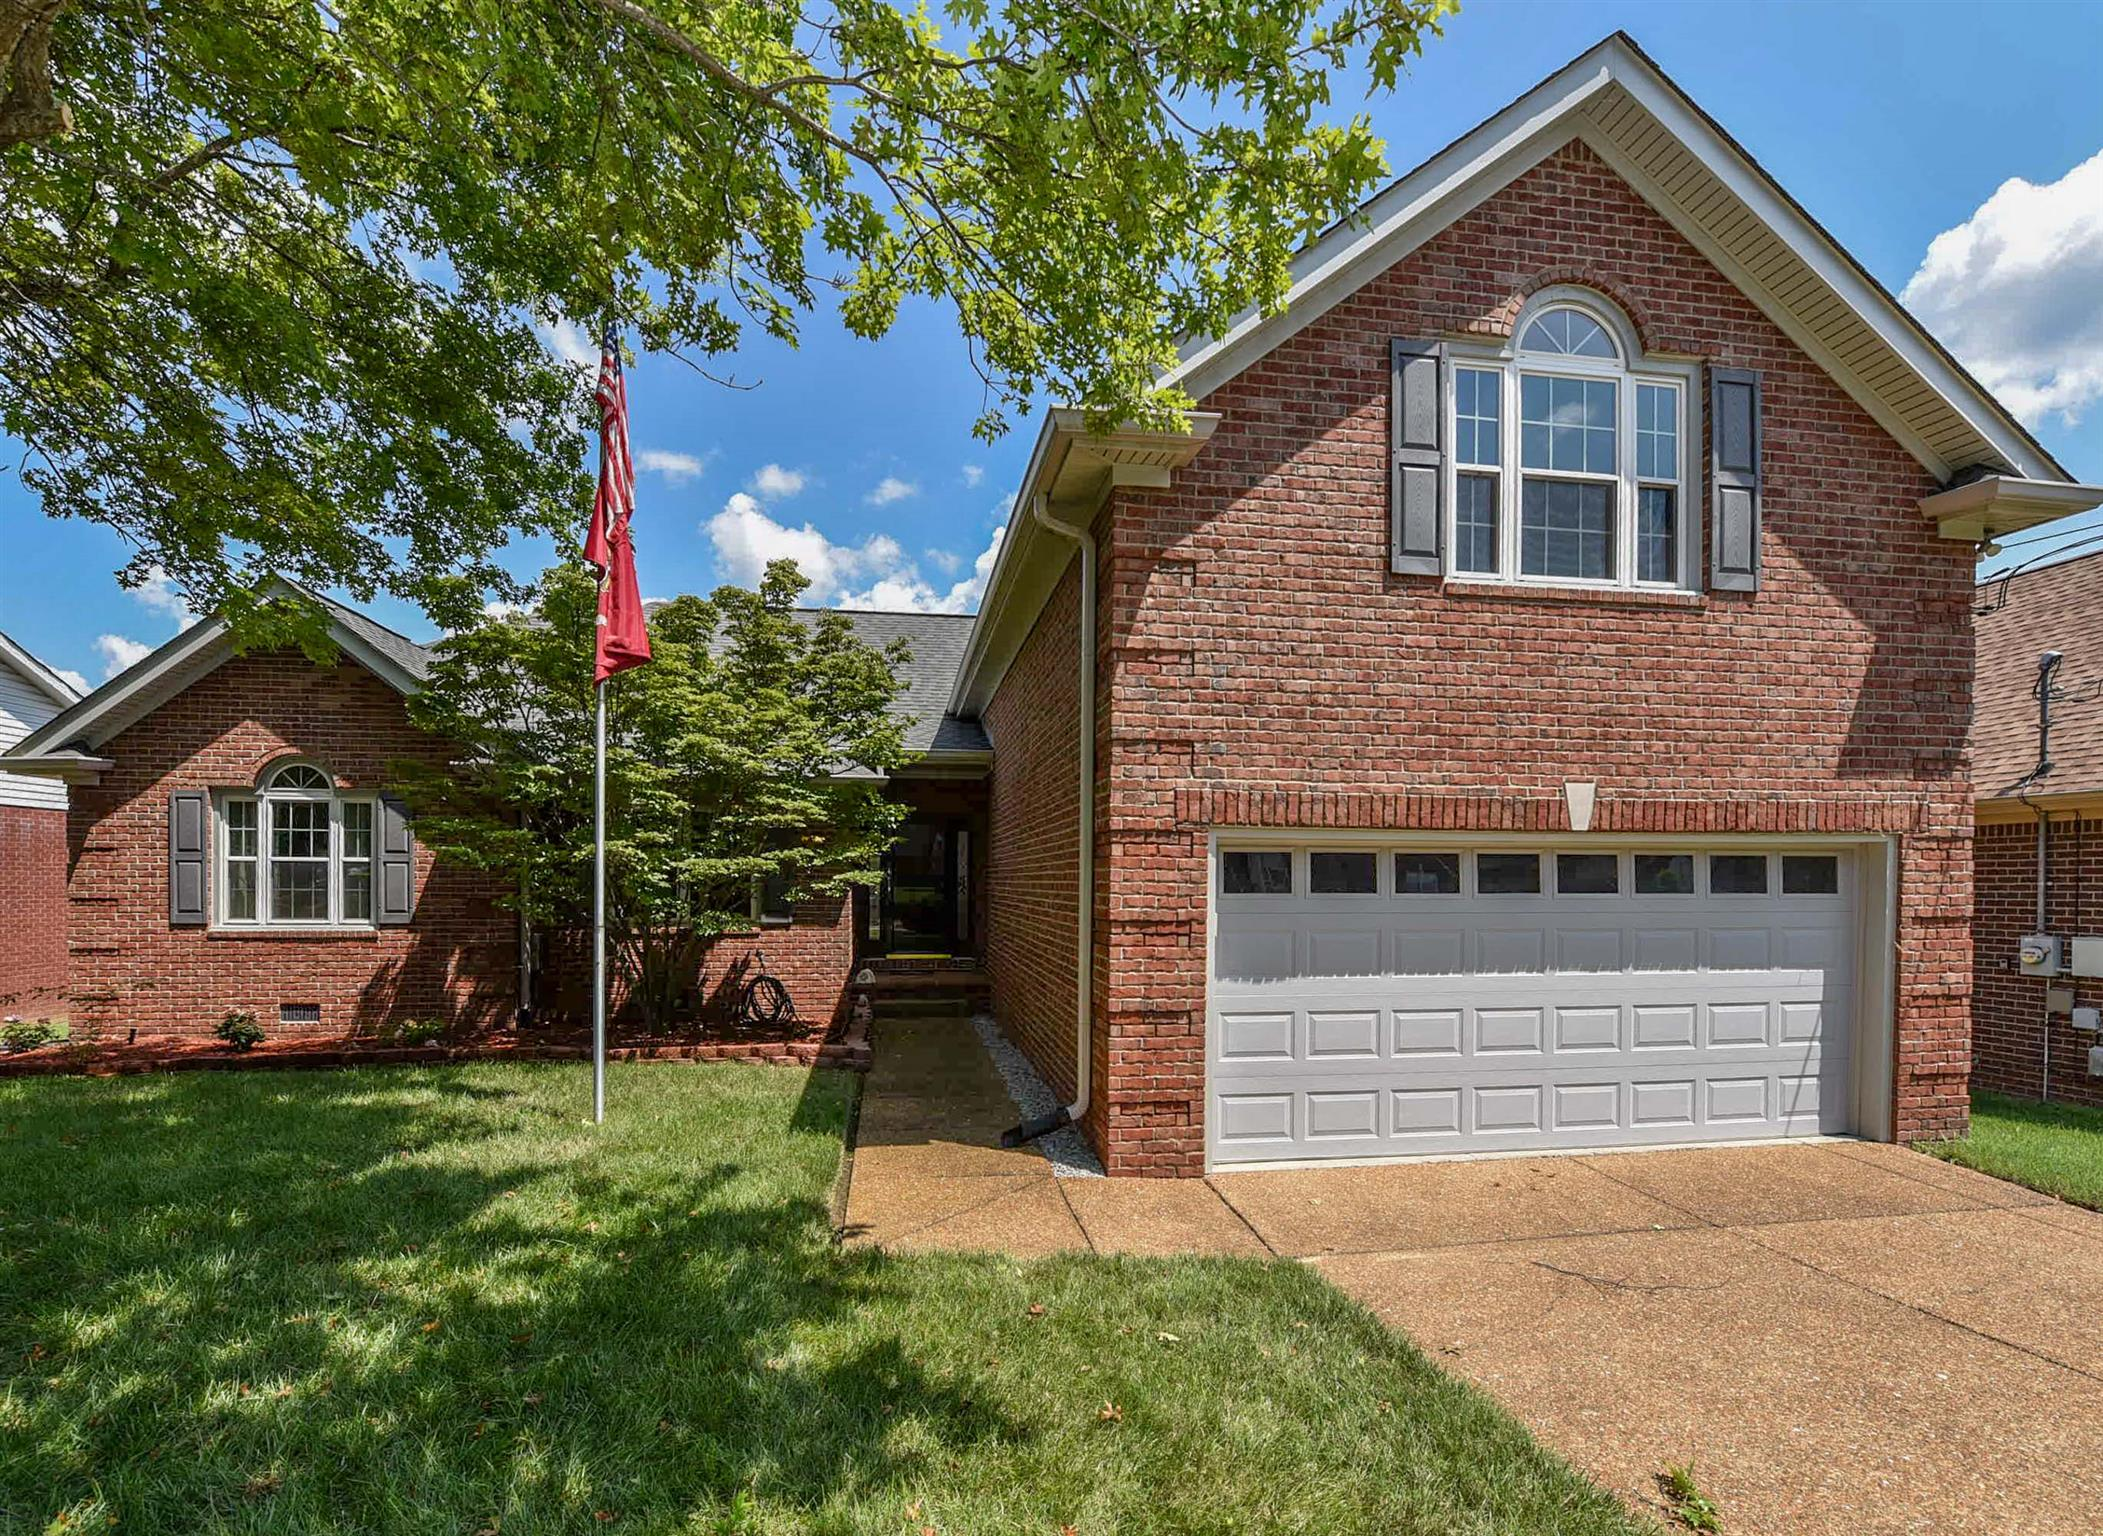 6377 Paddington Way, Nashville-Antioch, Tennessee